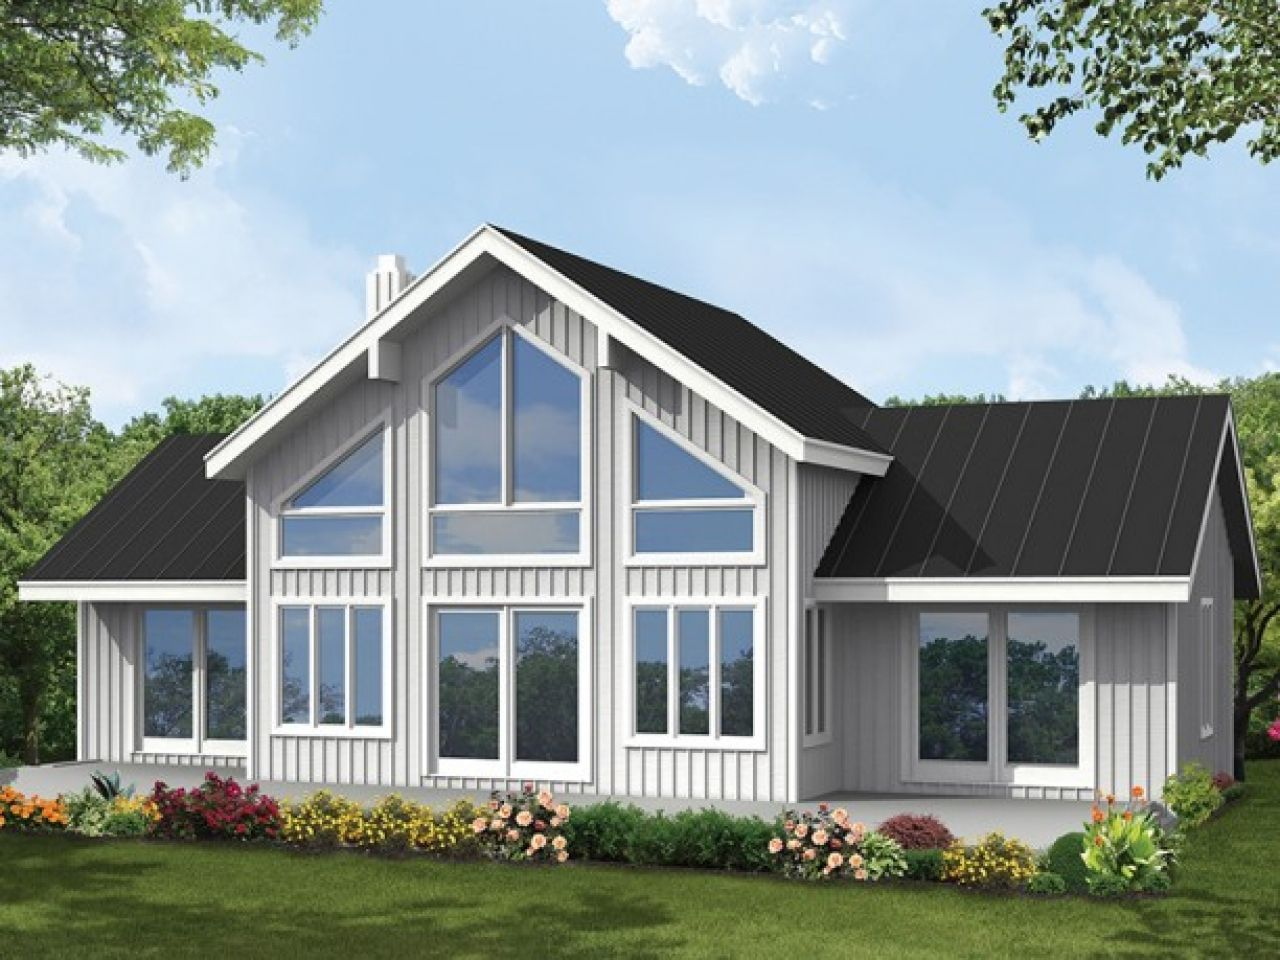 big window house plans let natural light in 4 bedroom